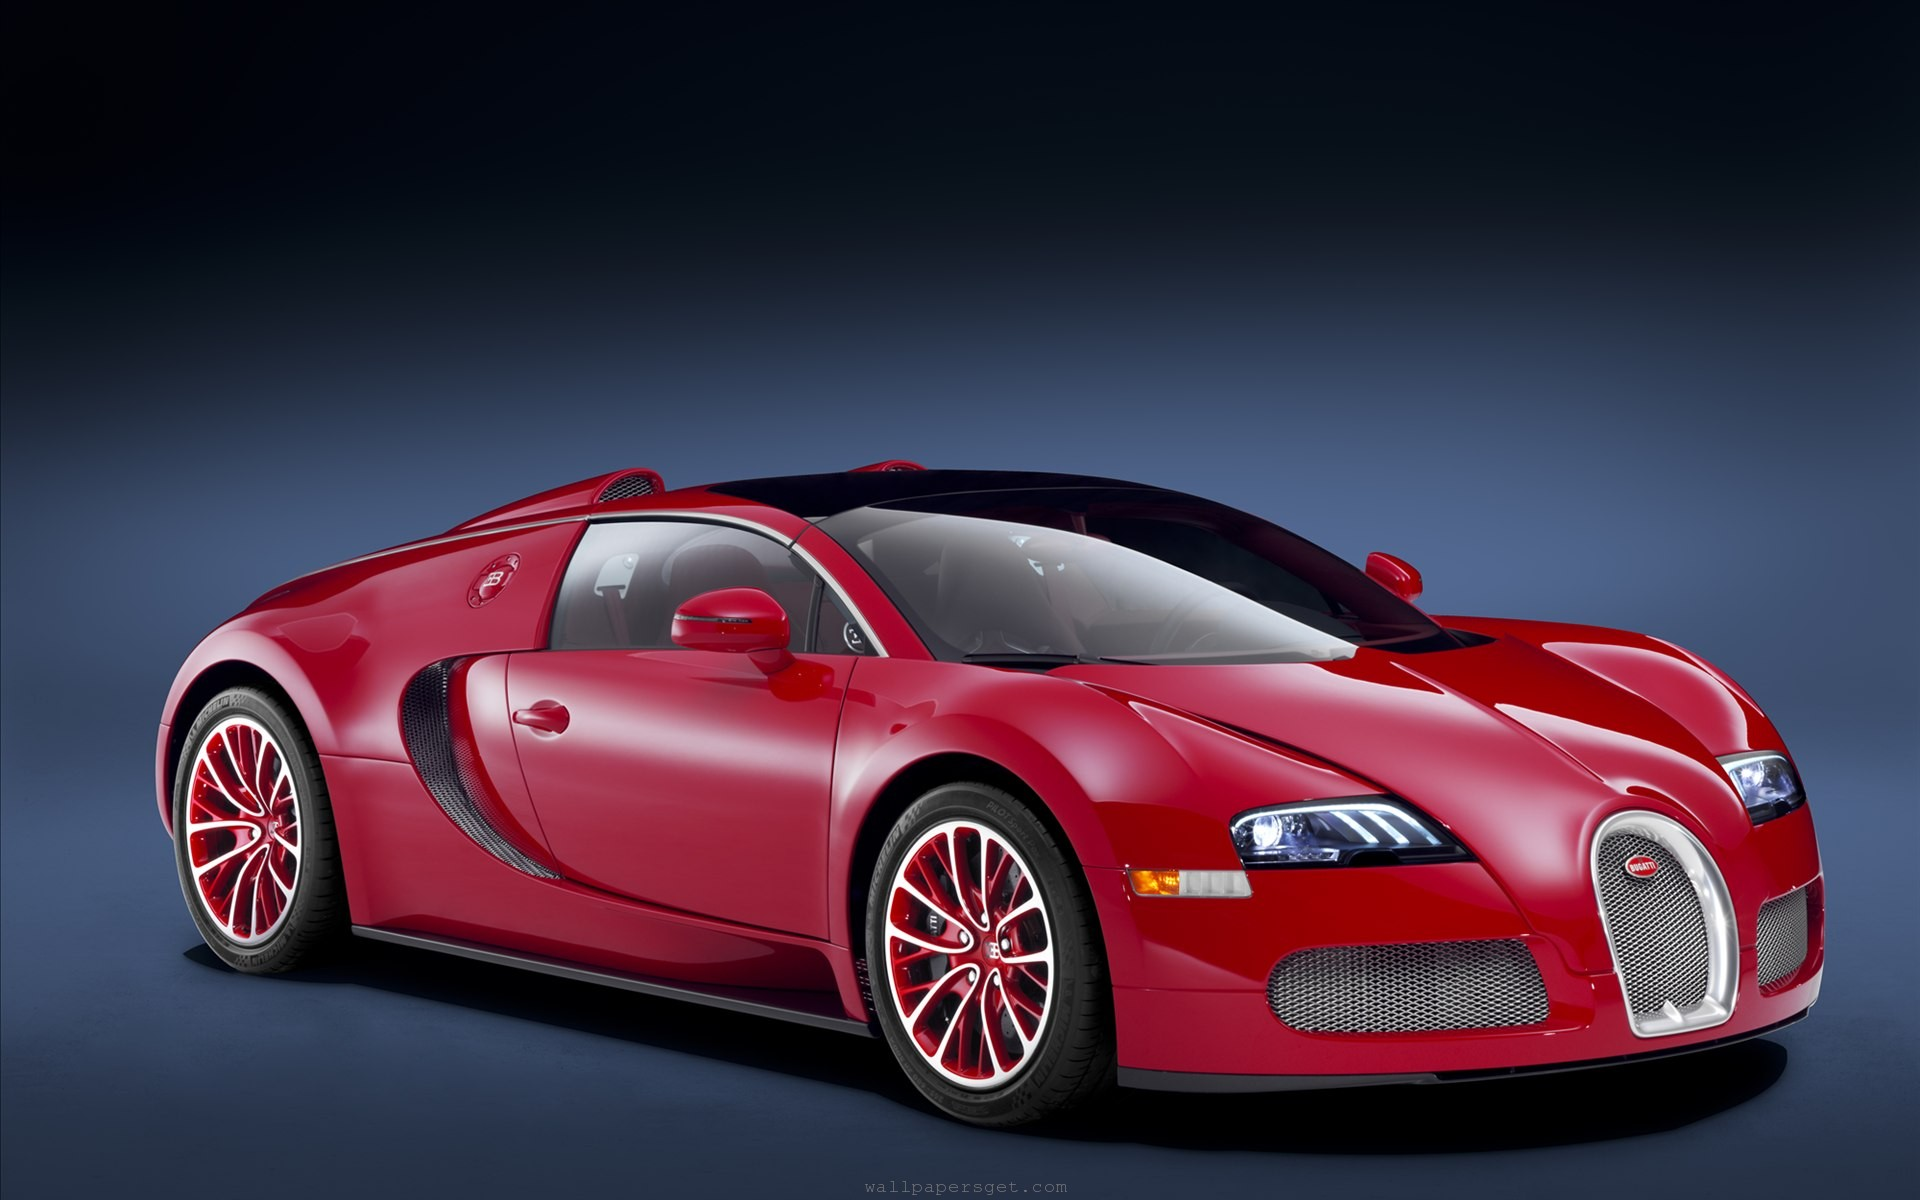 Free Download Red Bugatti Veyron Wallpaper 4882 Hd Wallpapers In Cars Imagescicom 1920x1200 For Your Desktop Mobile Tablet Explore 48 Hd Bugatti Veyron Wallpaper Bugatti Wallpapers Bugatti Veyron Wallpaper